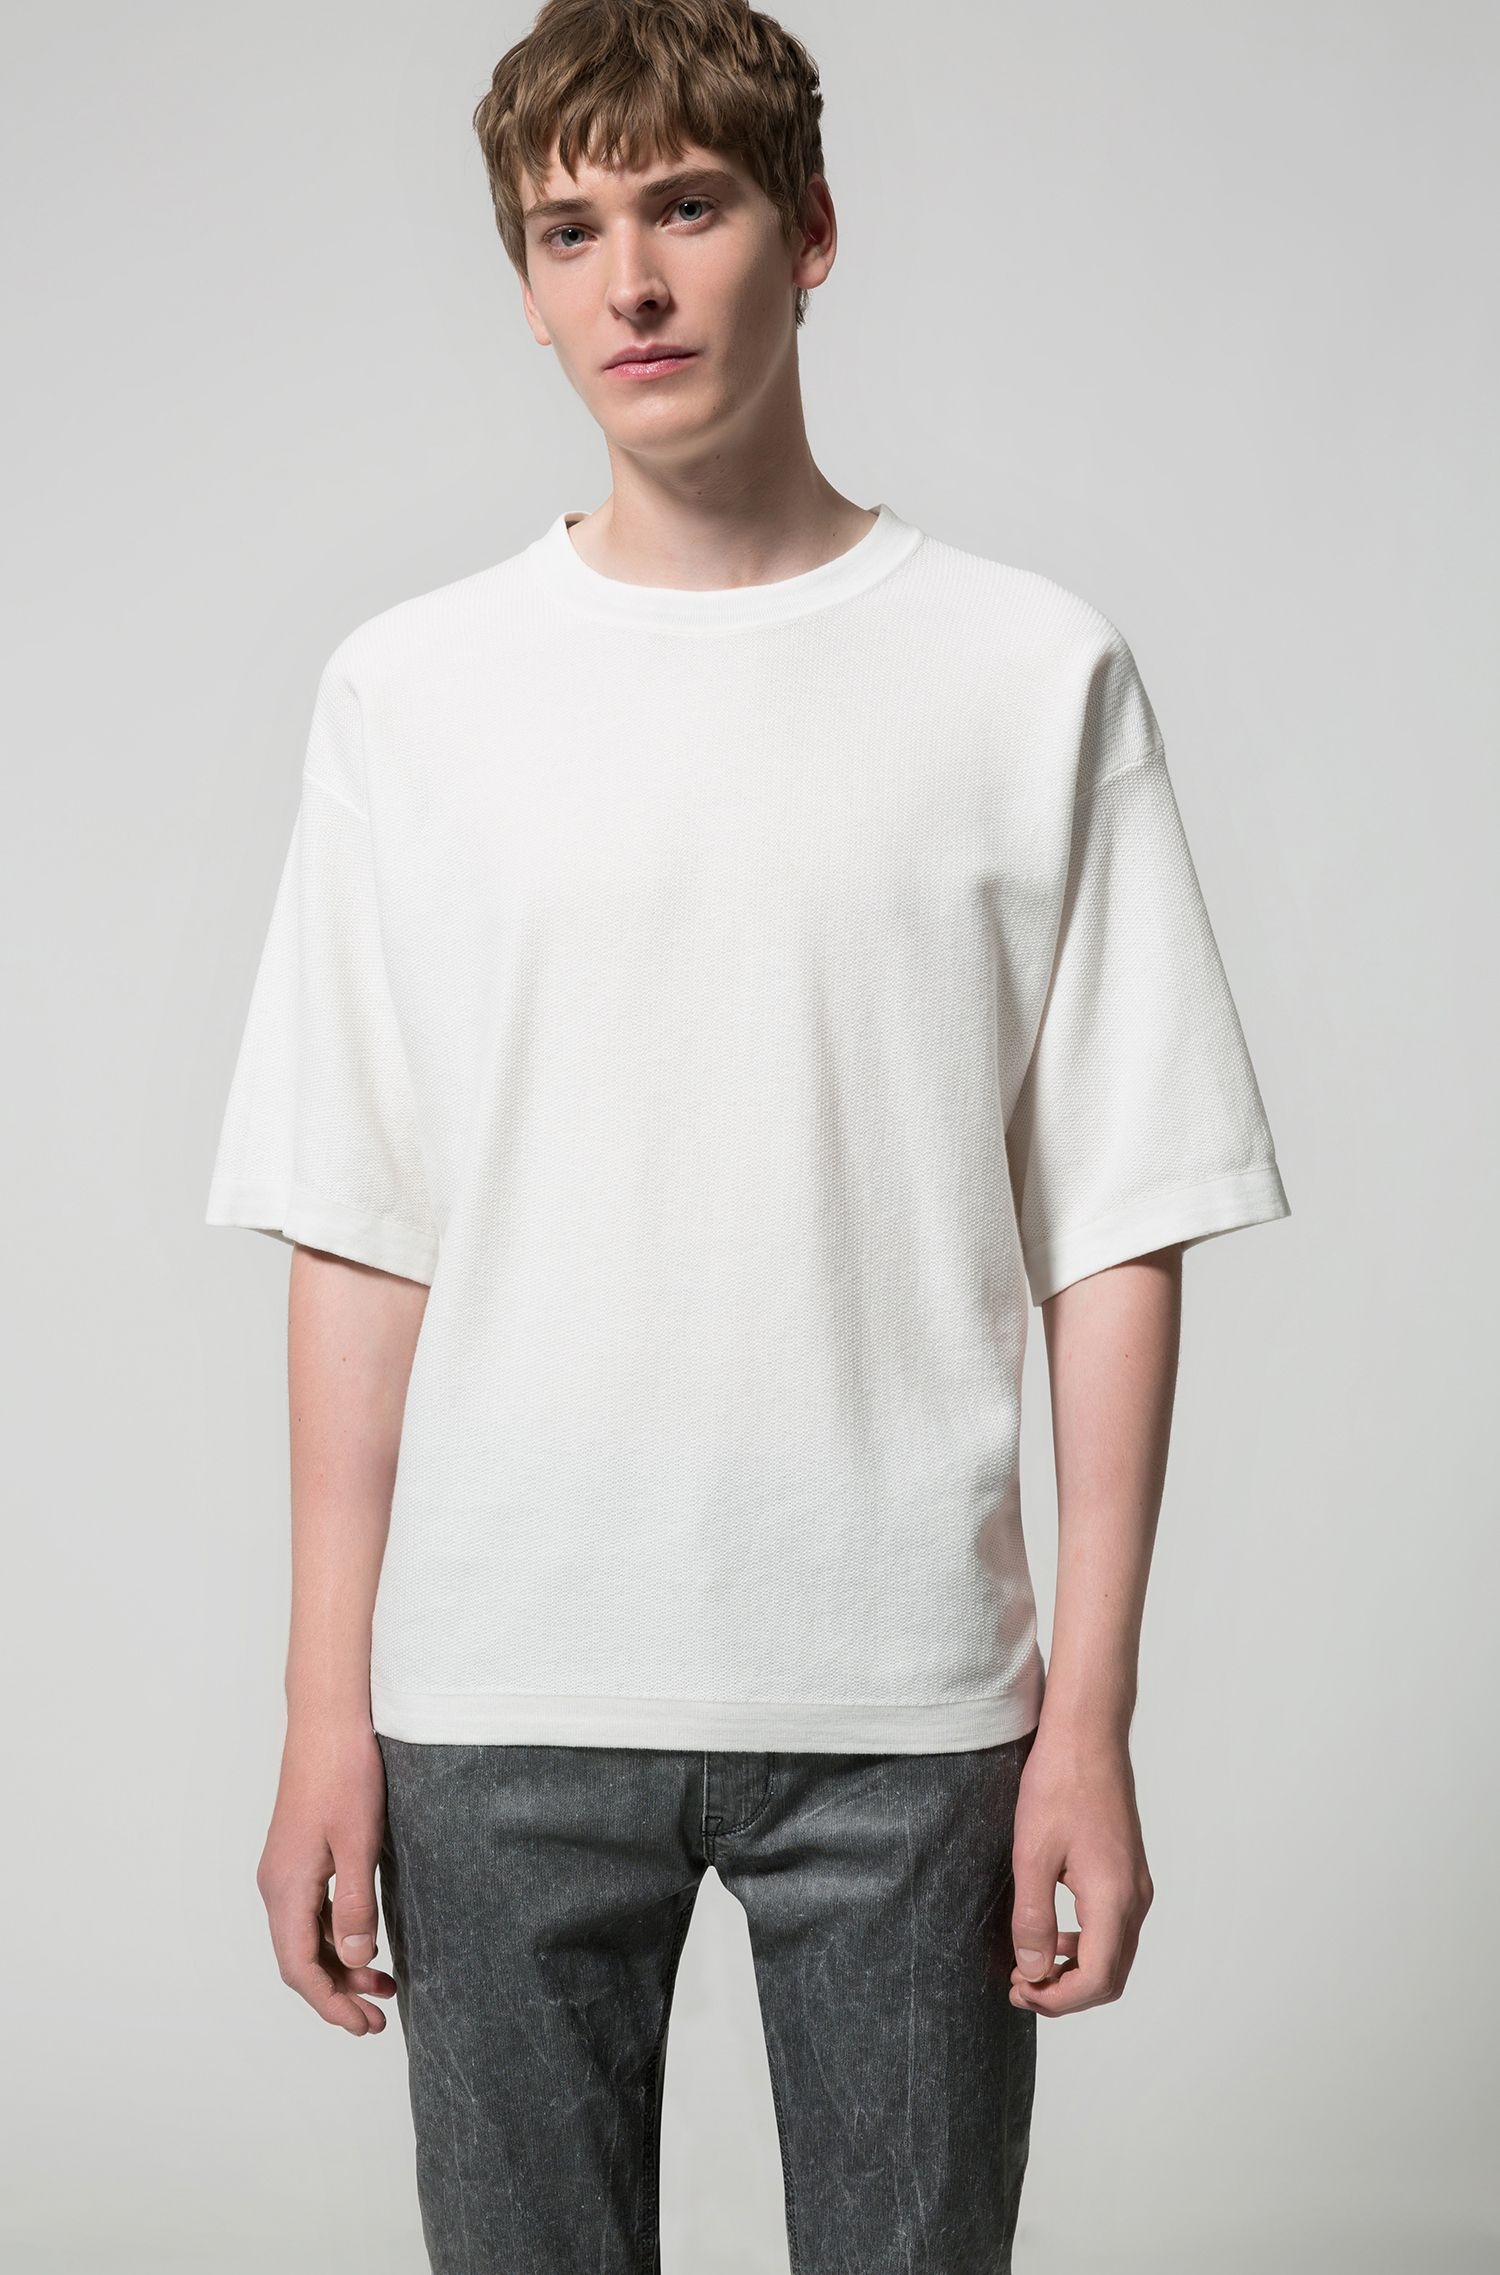 Oversized-fit short-sleeved sweater in textured cotton, Natural